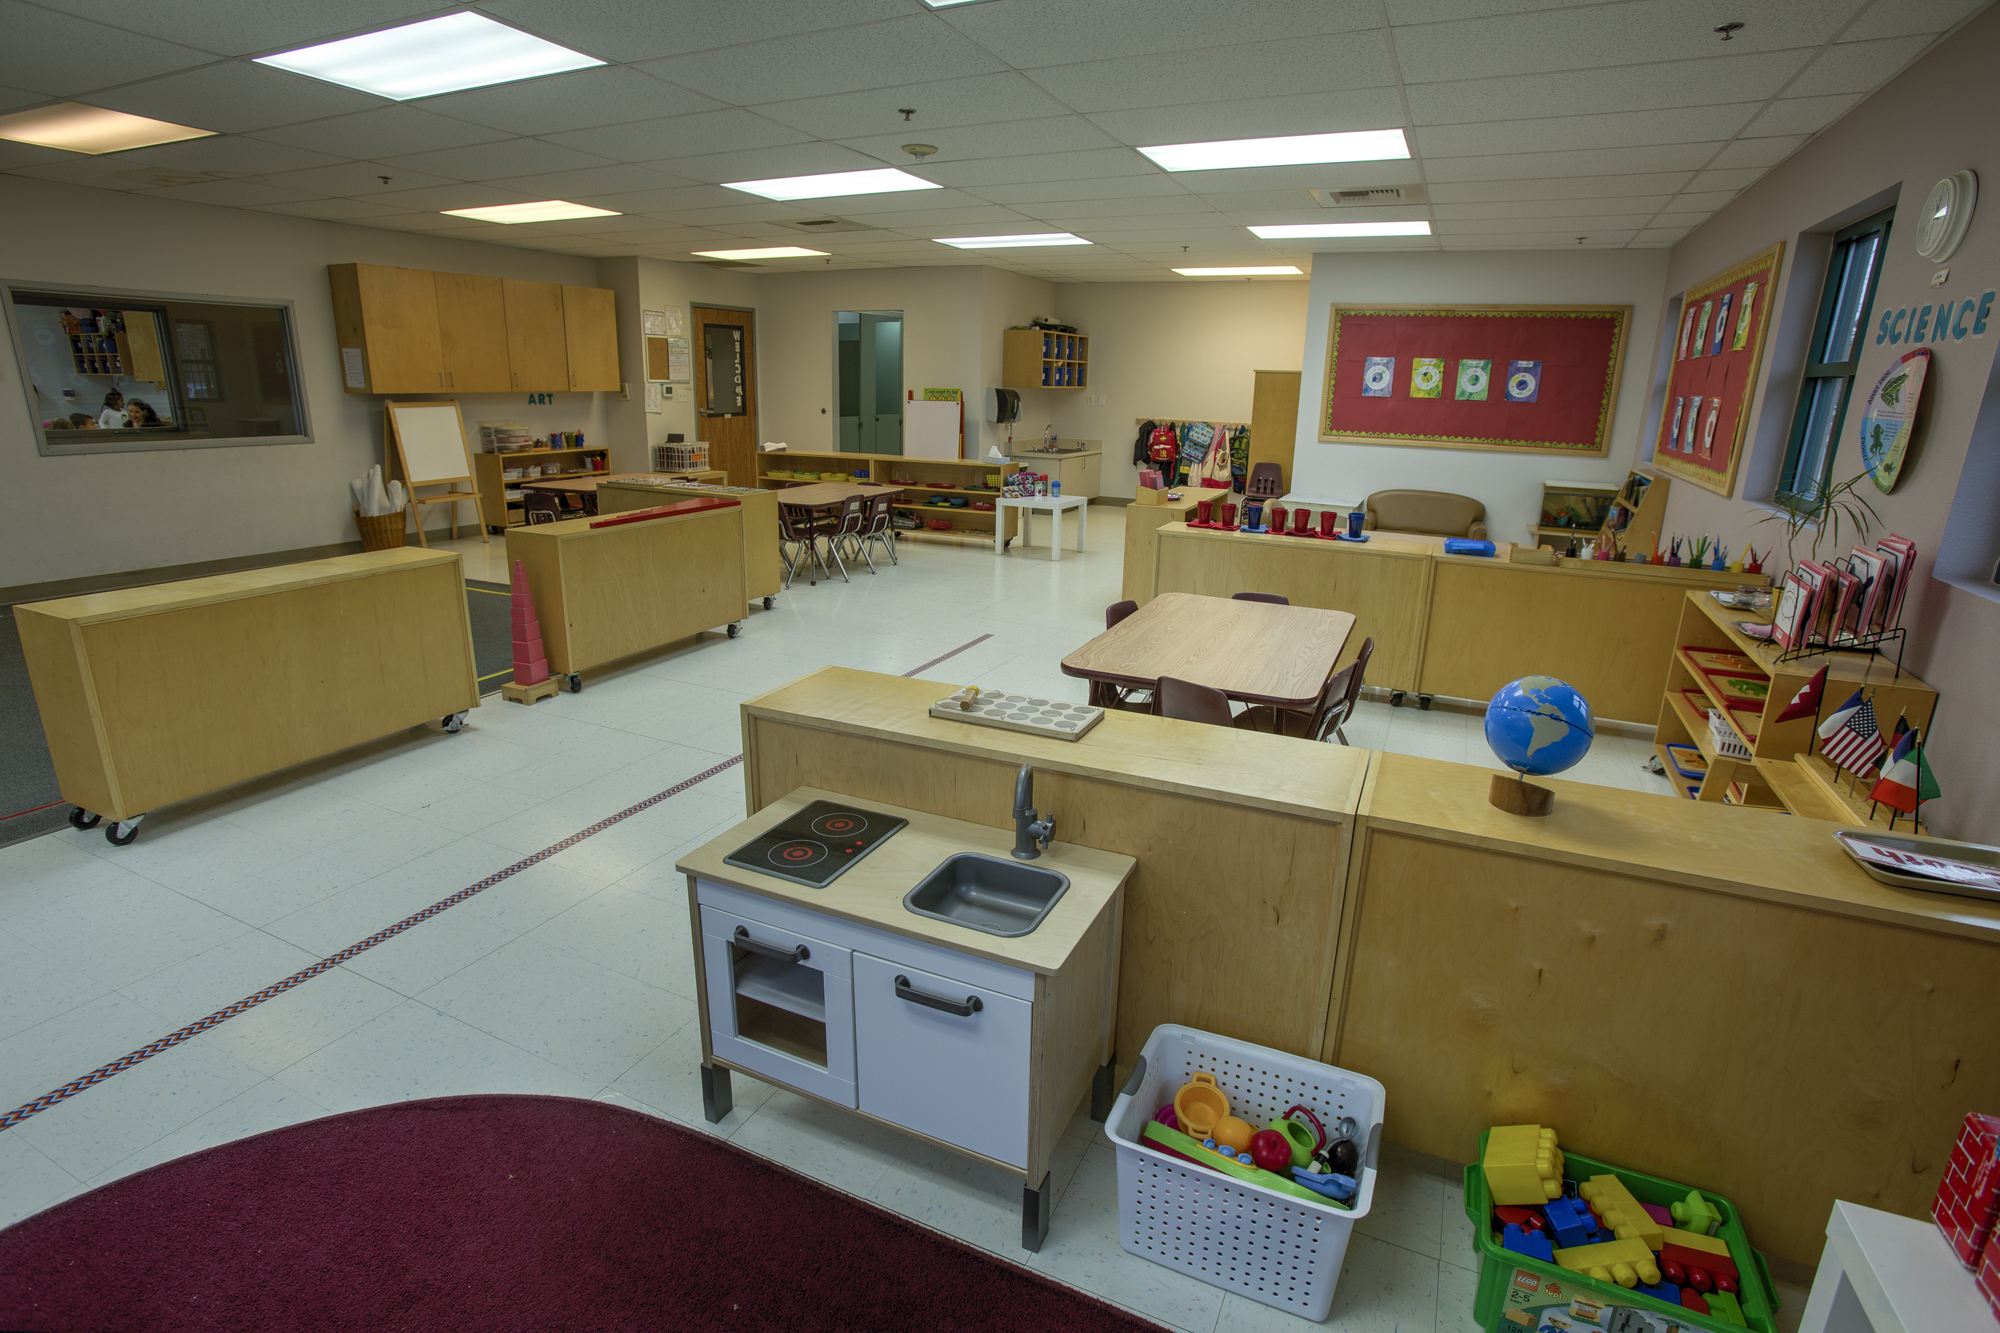 Little-Blossom-Montessori-Preschool-and-Daycare-Services-Sacramento-Natomas_19.jpg